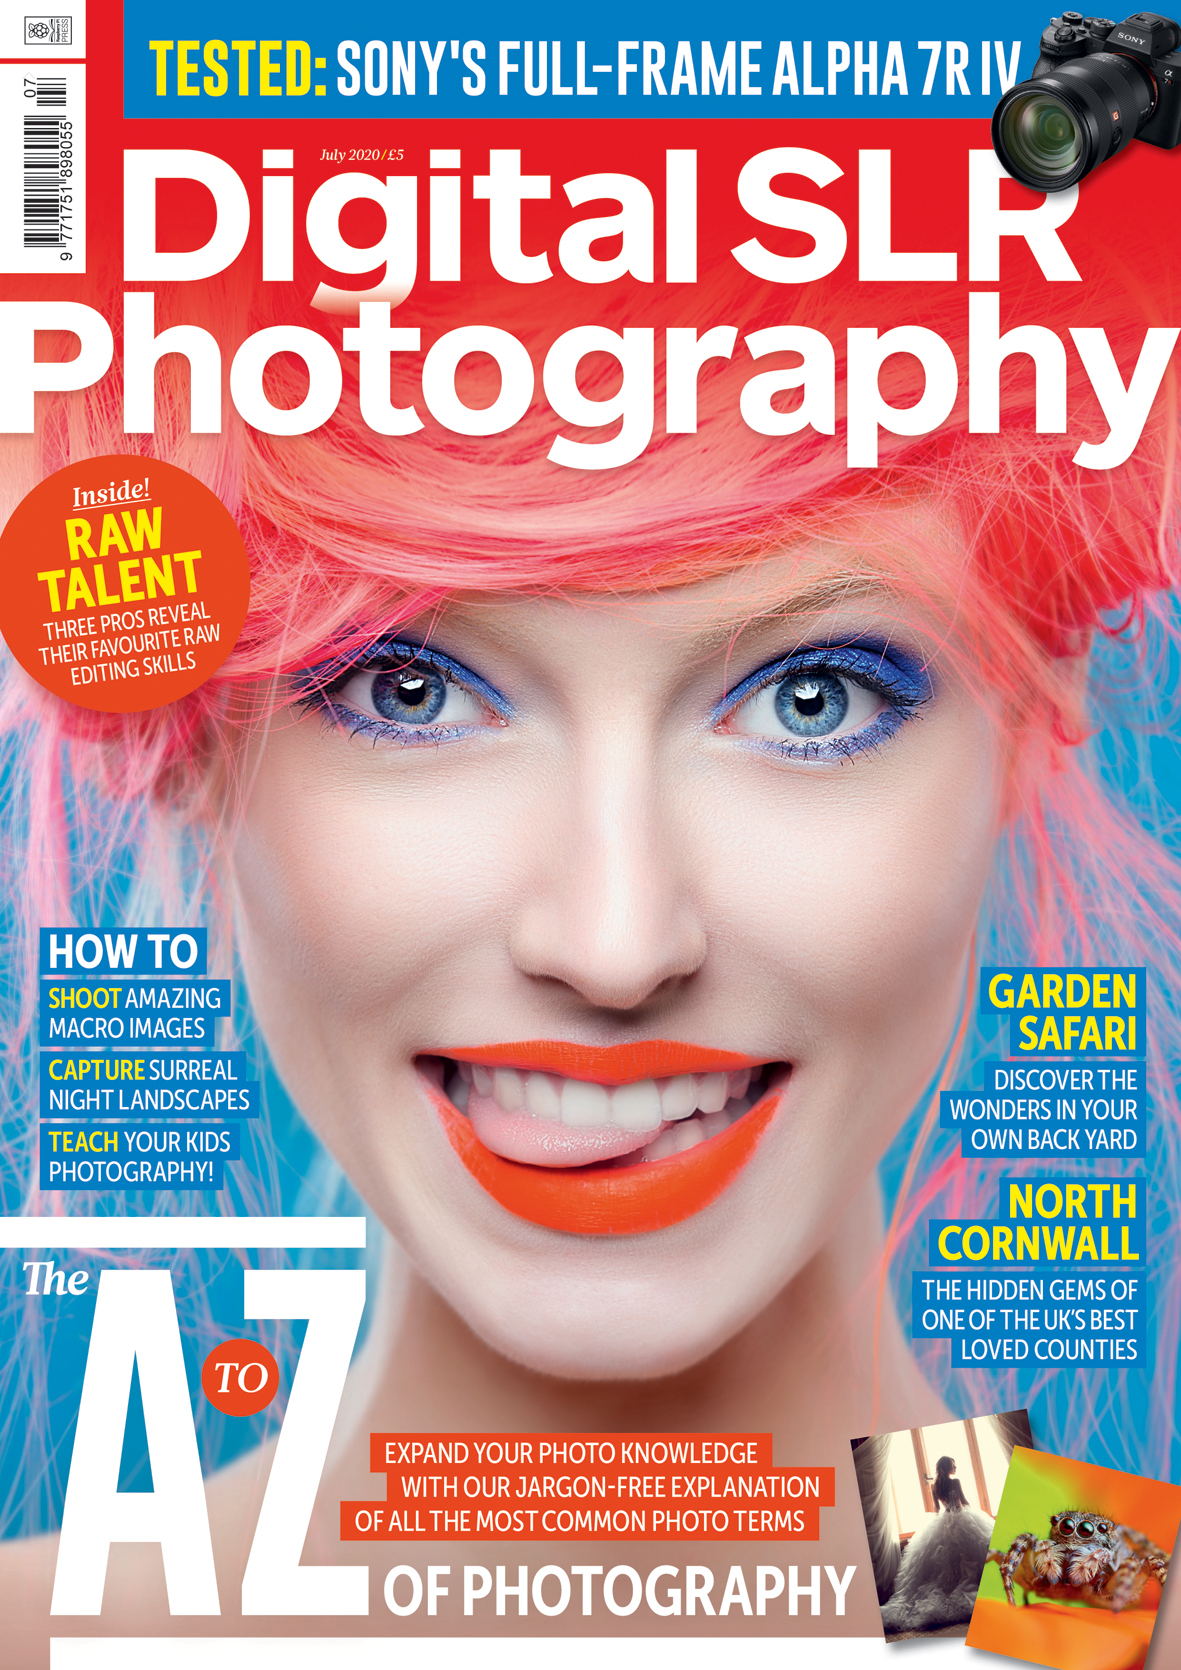 Digital SLR Photography issue 164 cover